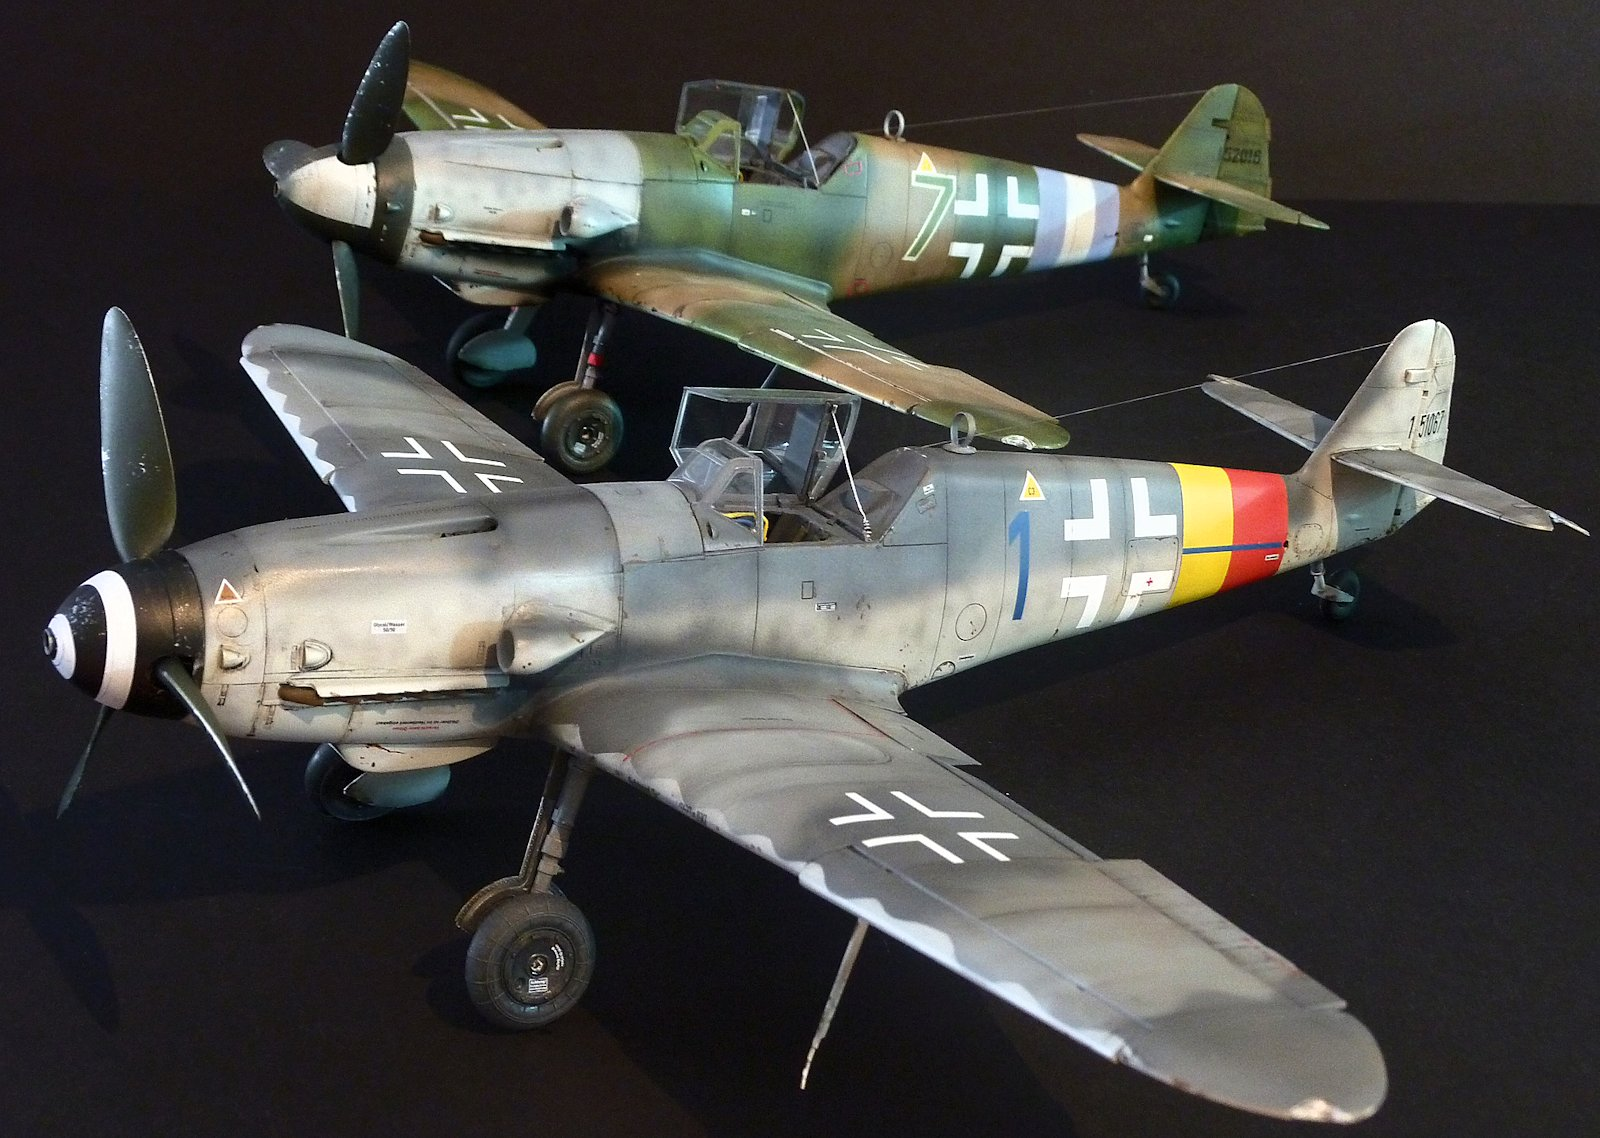 Messerschmitt Bf 109 E-4/7 Decal Preview (Hussar 1/32)